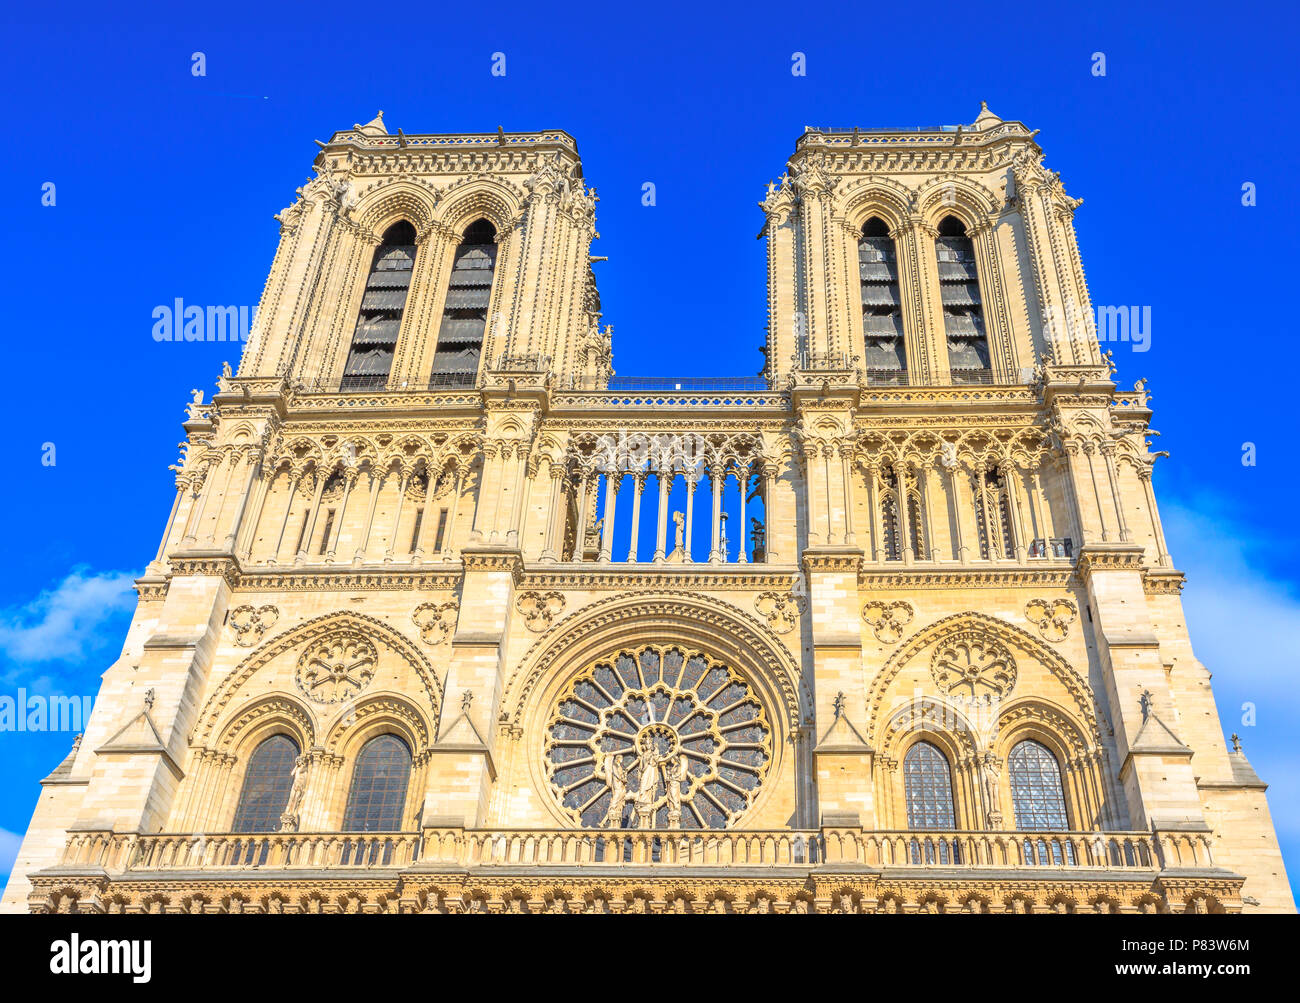 Details of French architecture of Notre Dame cathedral of Paris, France. Beautiful sunny day in the blue sky. Our Lady of Paris church. Central main facade with towers and gothic rosettes. - Stock Image